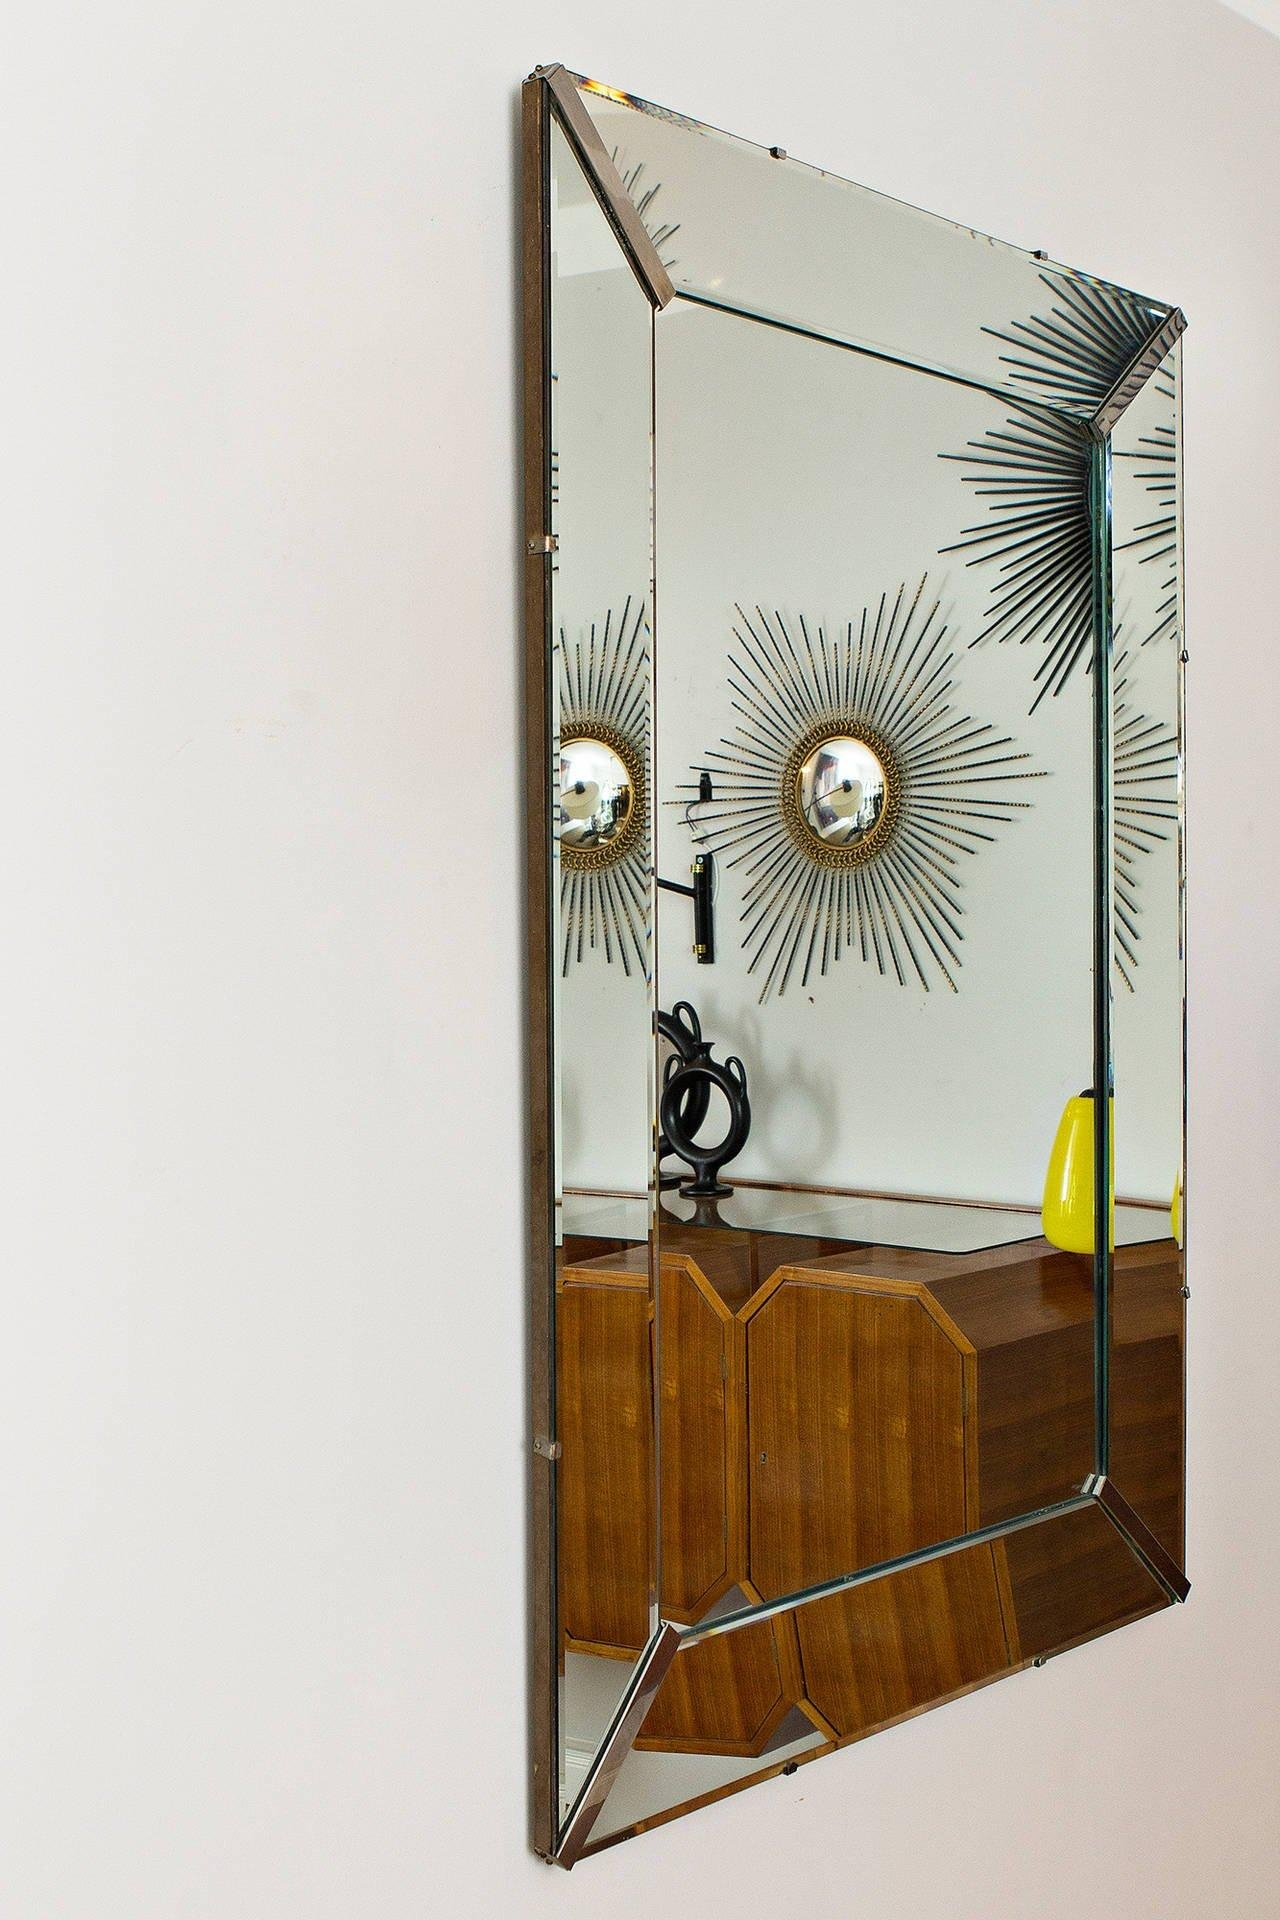 Elegant Art Deco Wall Mirror, France Circa 1940 At 1Stdibs Regarding Art Deco Wall Mirrors (View 5 of 20)